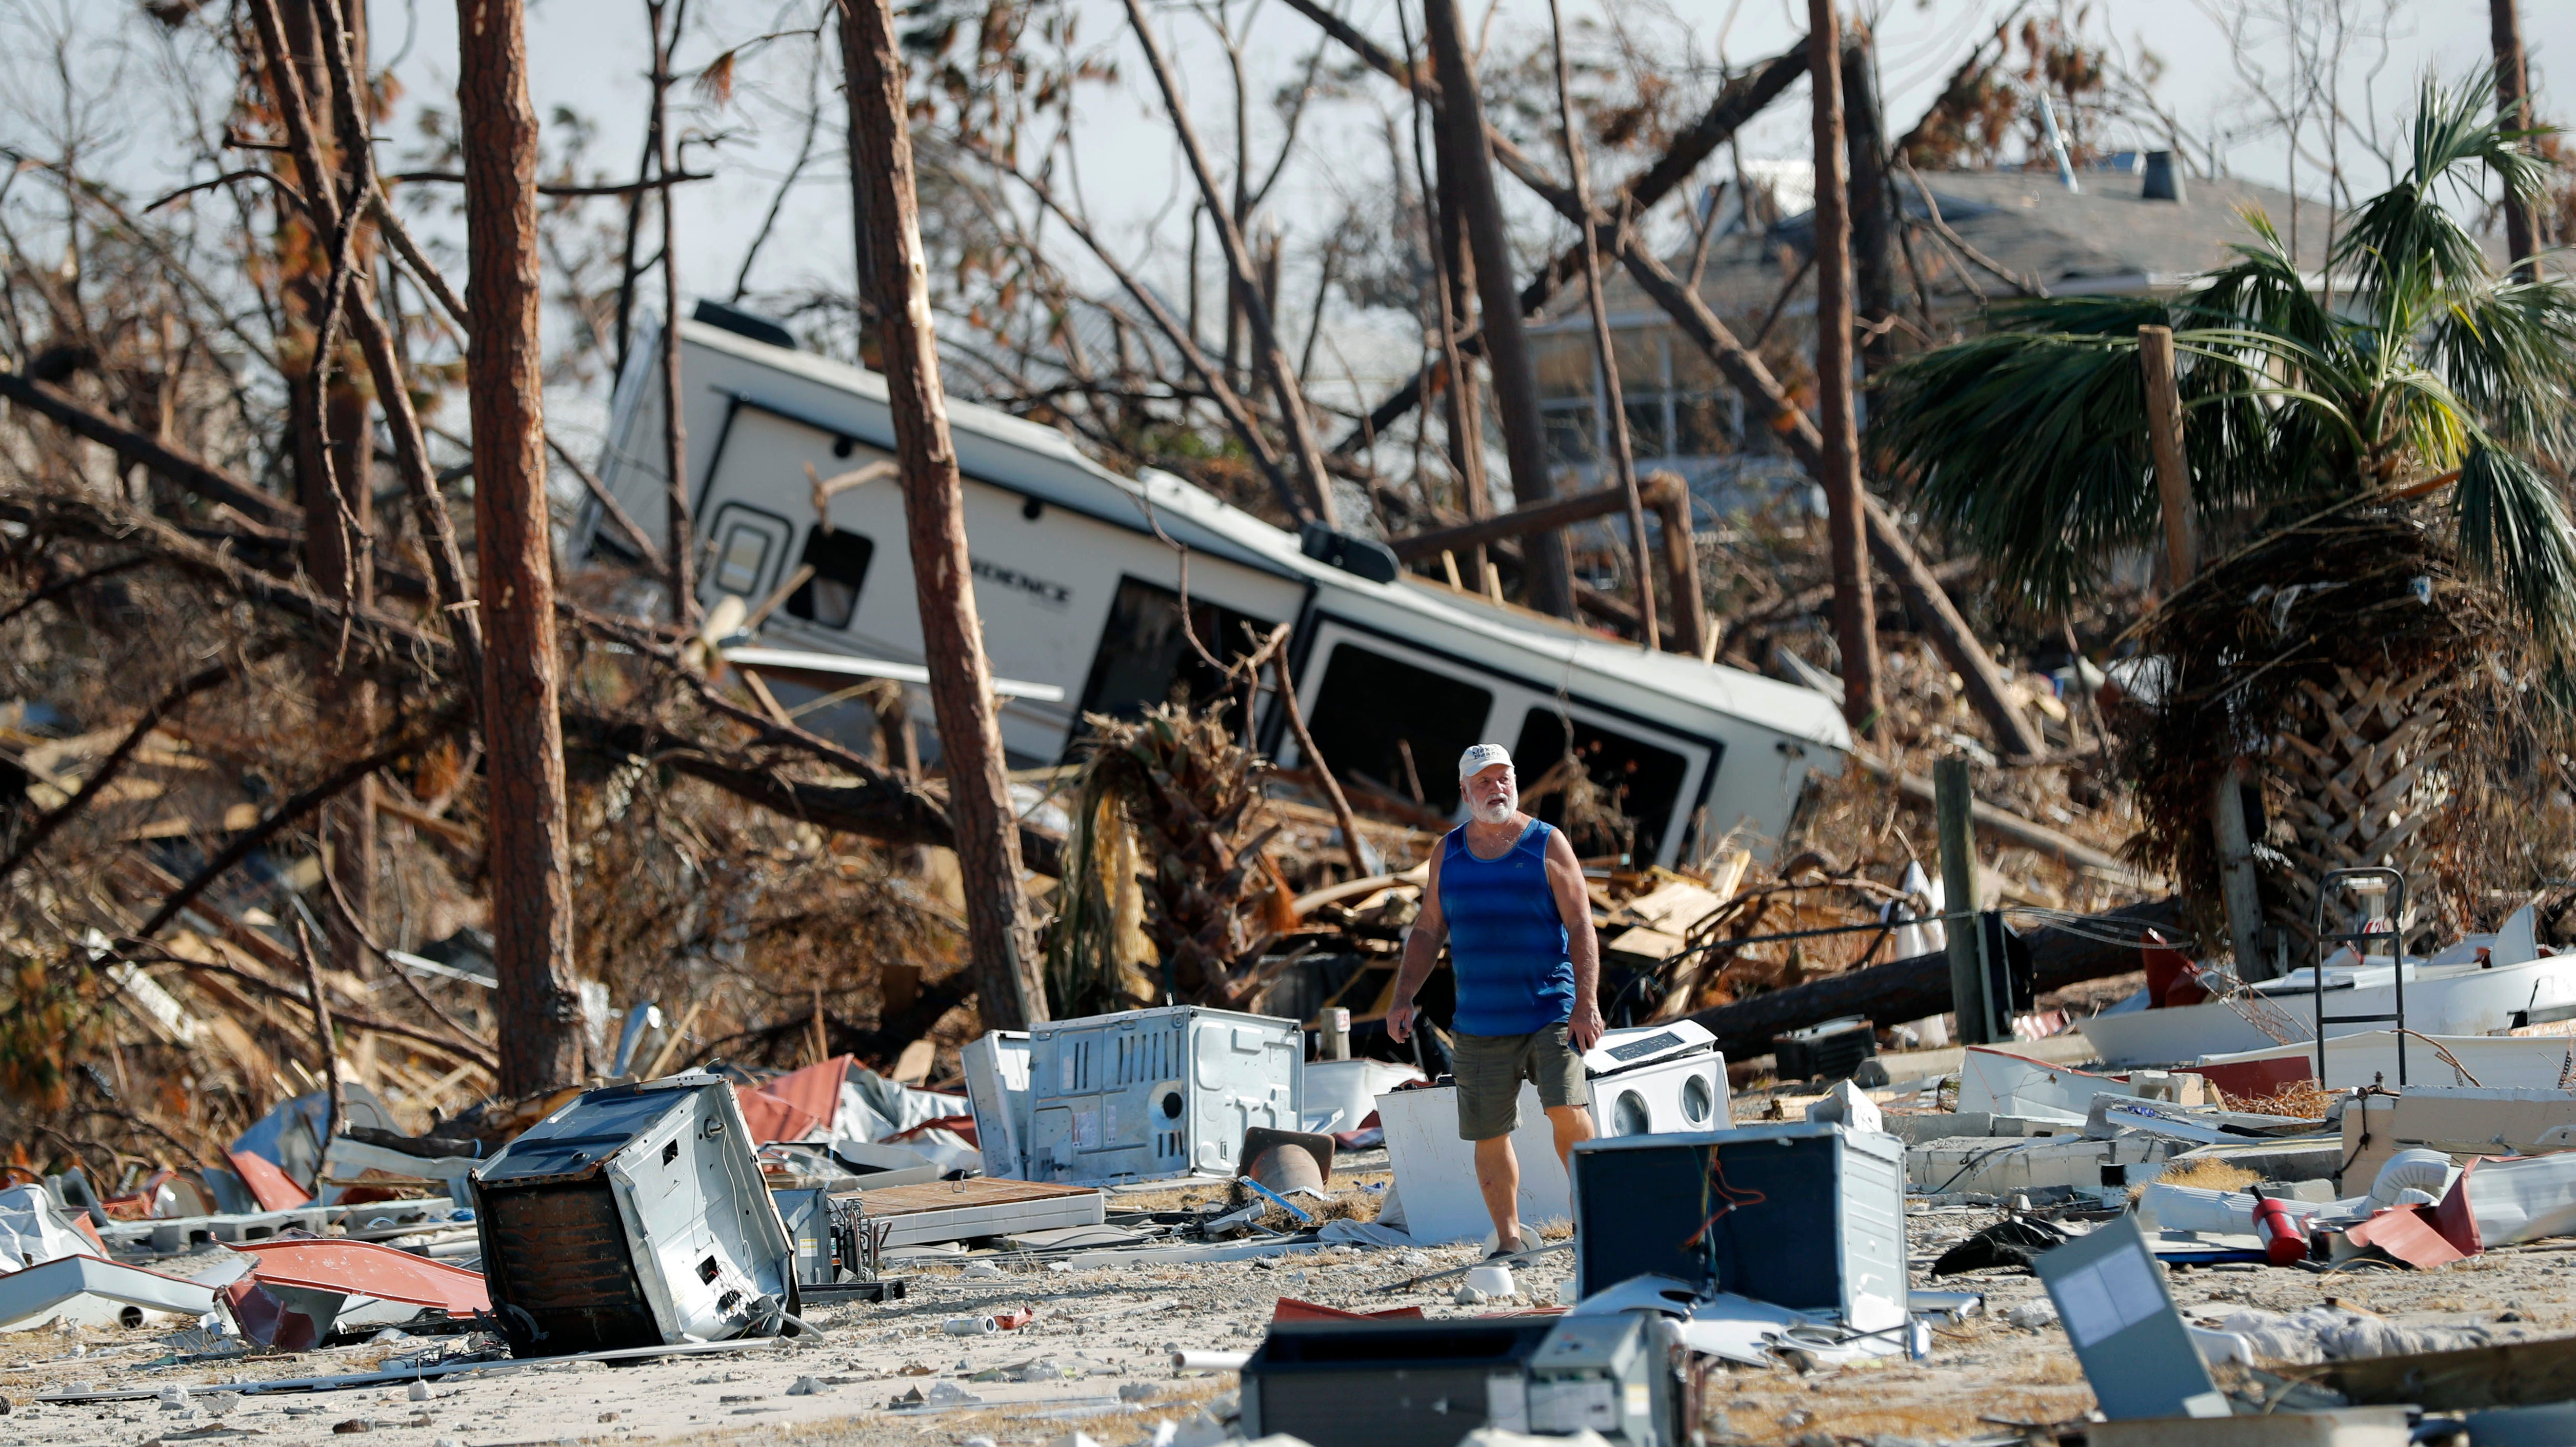 Ronnie Poole walks through debris as he checks on a friend's home in the aftermath of Hurricane Michael in Mexico Beach, Fla., Wednesday, Oct. 17, 2018.